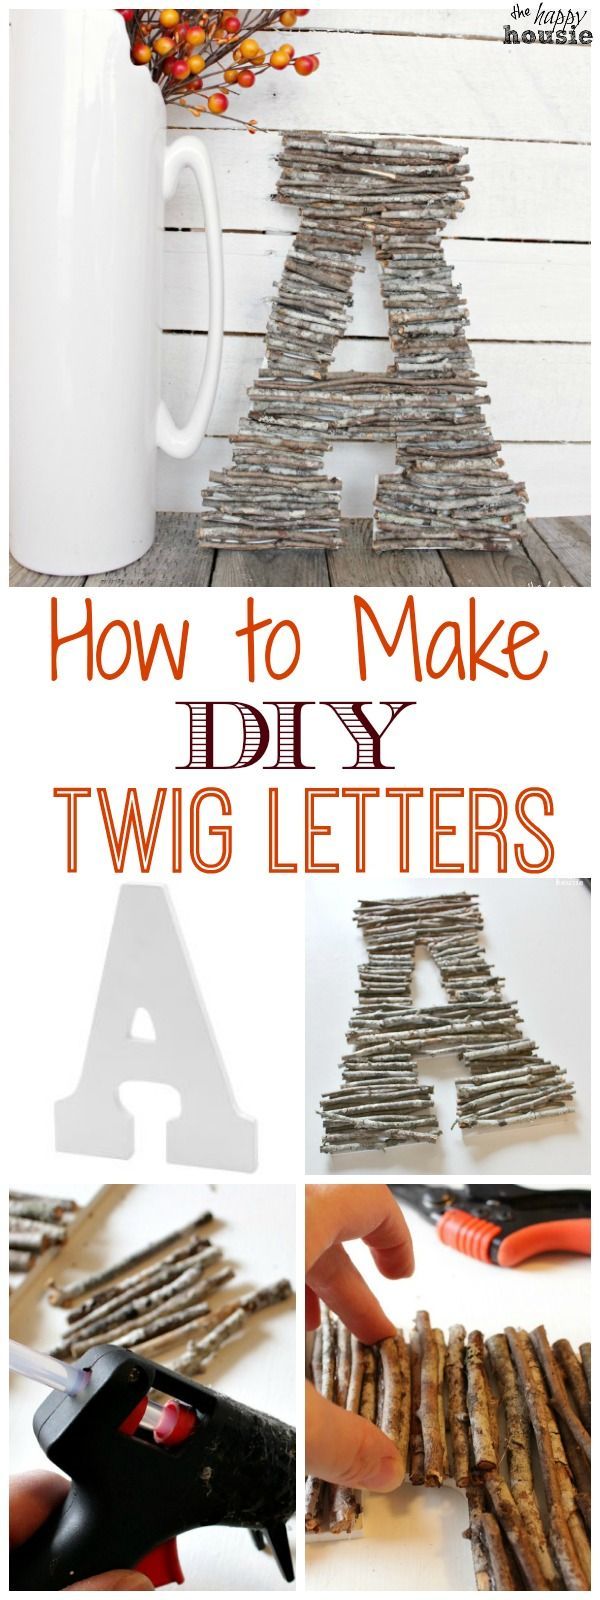 Crafts Letters   Diy  The own retro at Housie    jordan tutorial How easy   Diy how to red crafts Happy and Easy Easy make Twig Twig DIY   Letters Monogram   to your